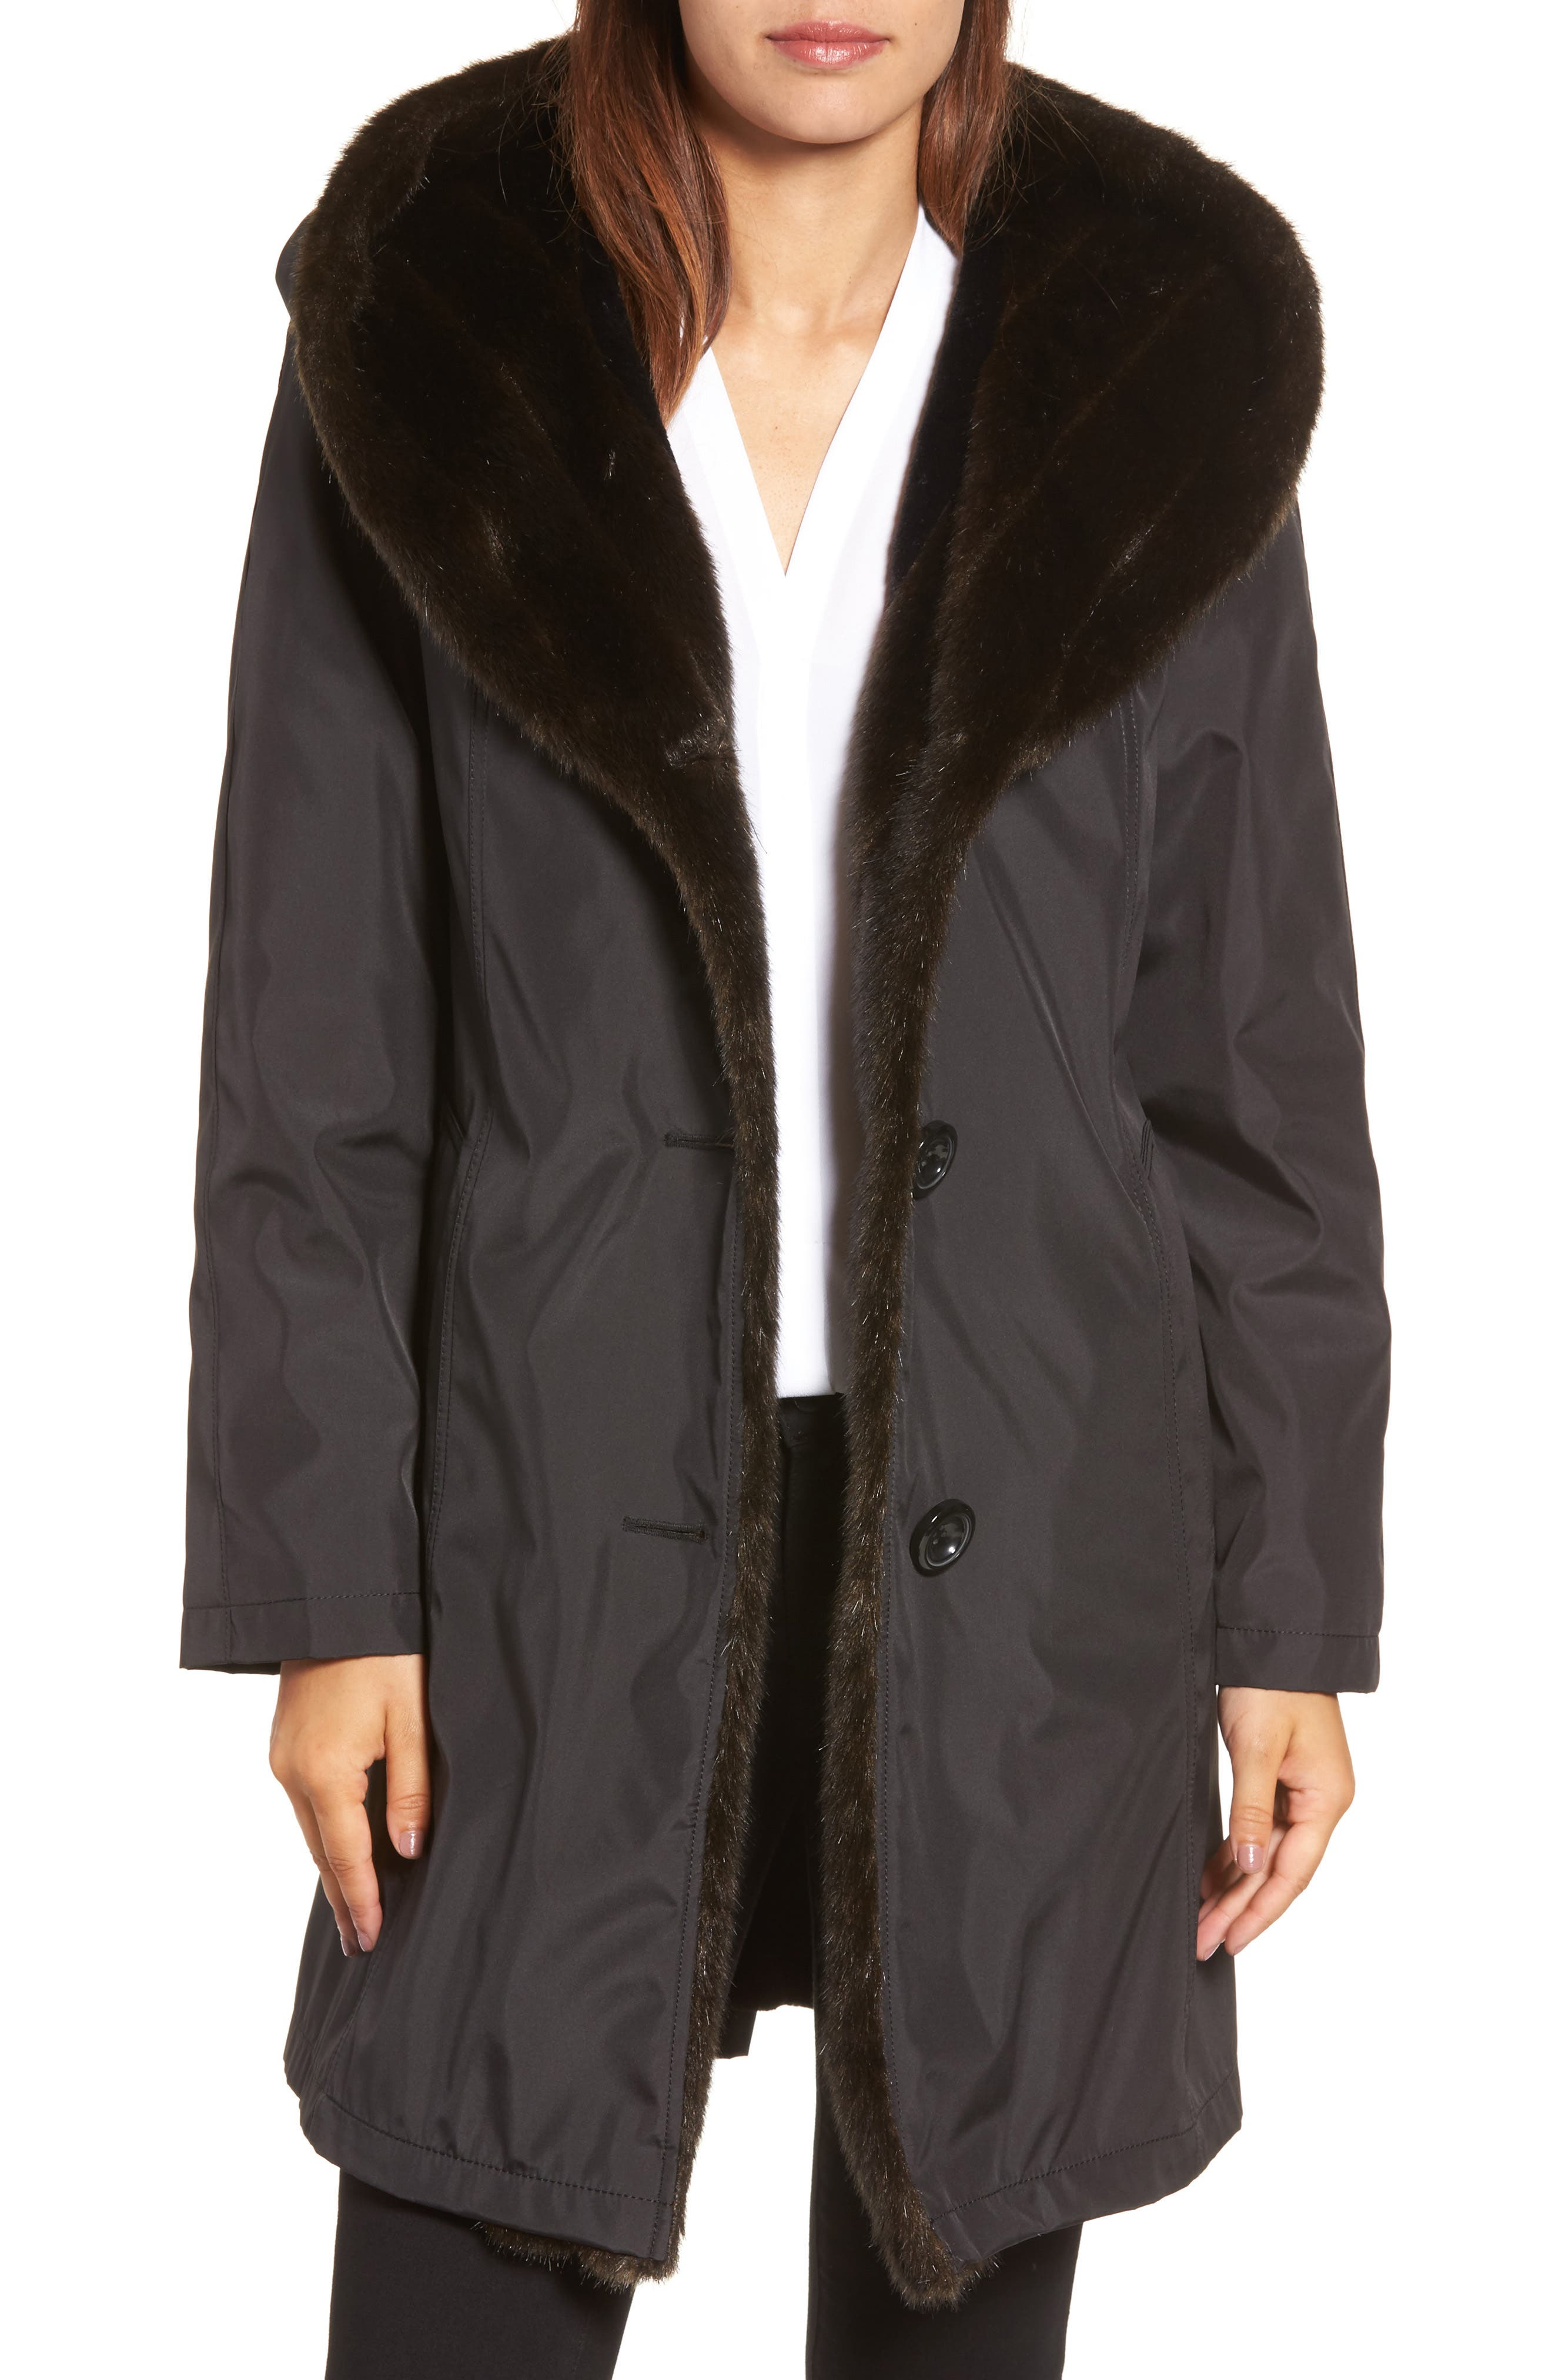 Gallery Storm Coat with Faux Fur Trim & Lining